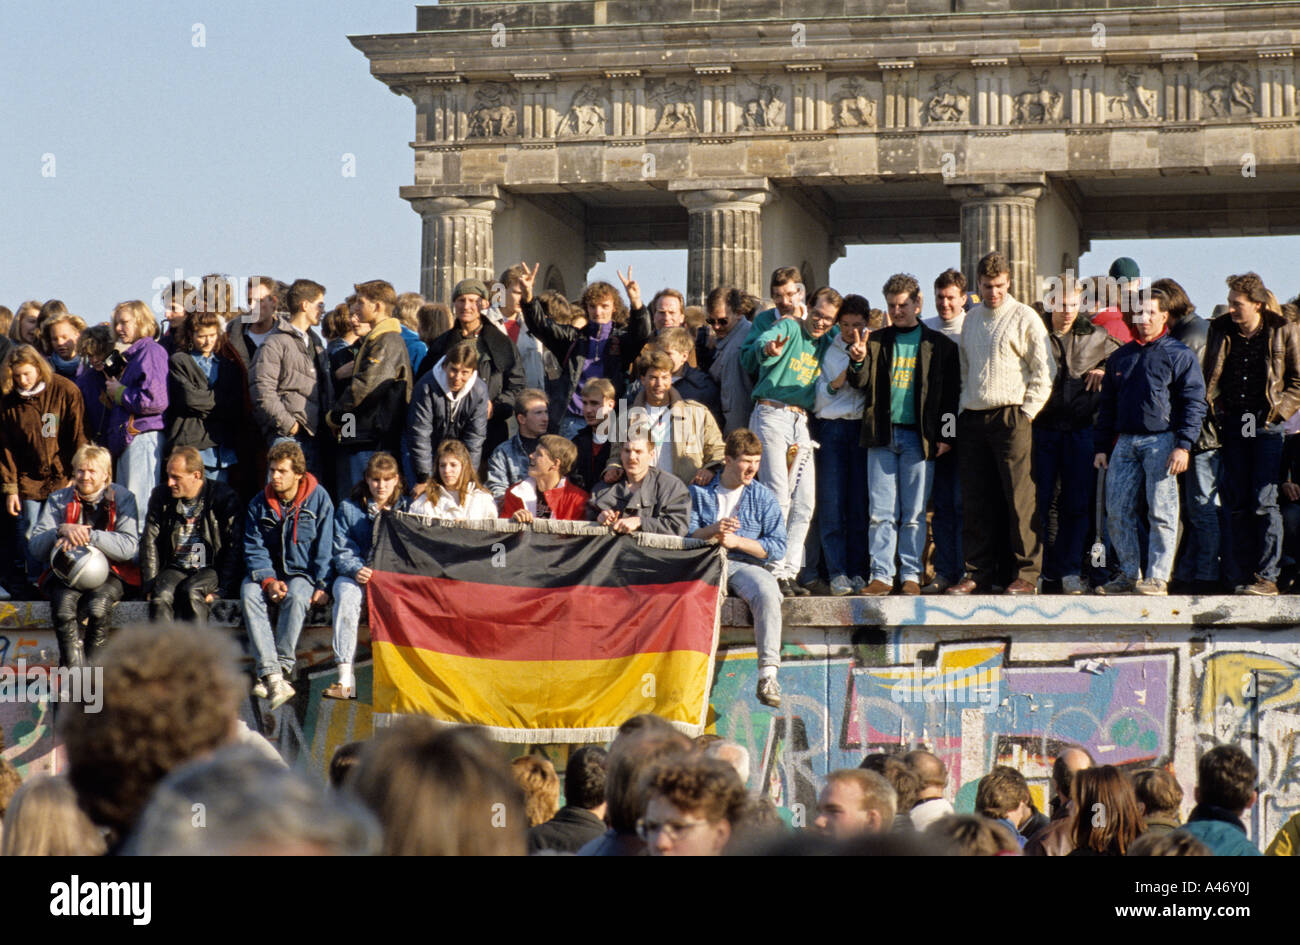 berlin wall essay The berlin wall essay 3066 words | 13 pages these questions all center around the aspect of berlin becoming two cities following world war ii berlin, eight years.